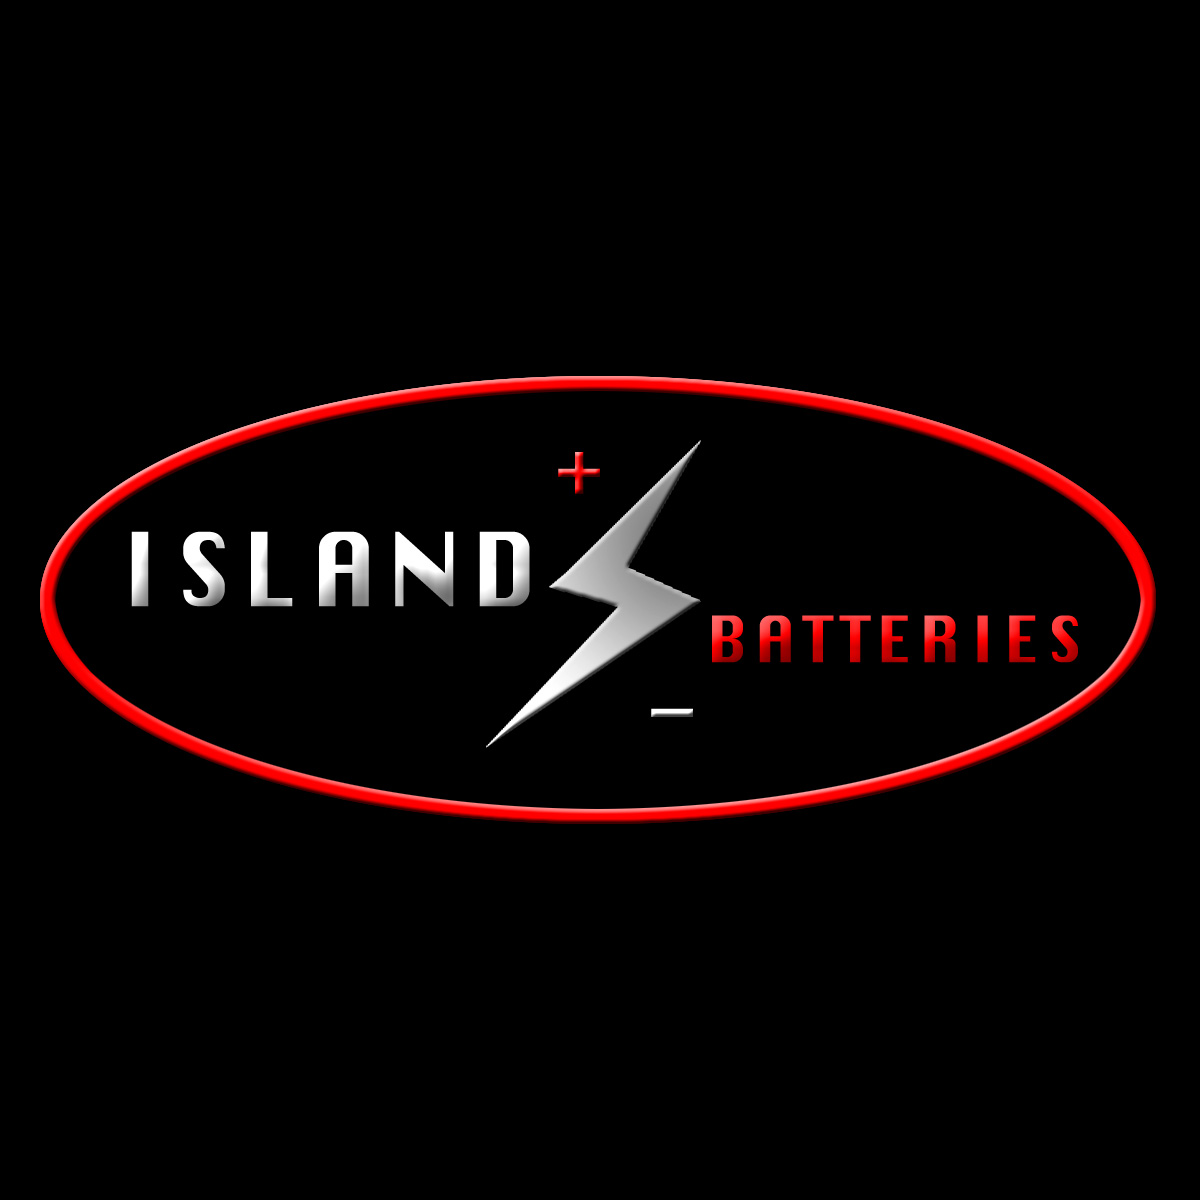 Logo Design by double-take - Entry No. 71 in the Logo Design Contest Fun Logo Design for Island Batteries.